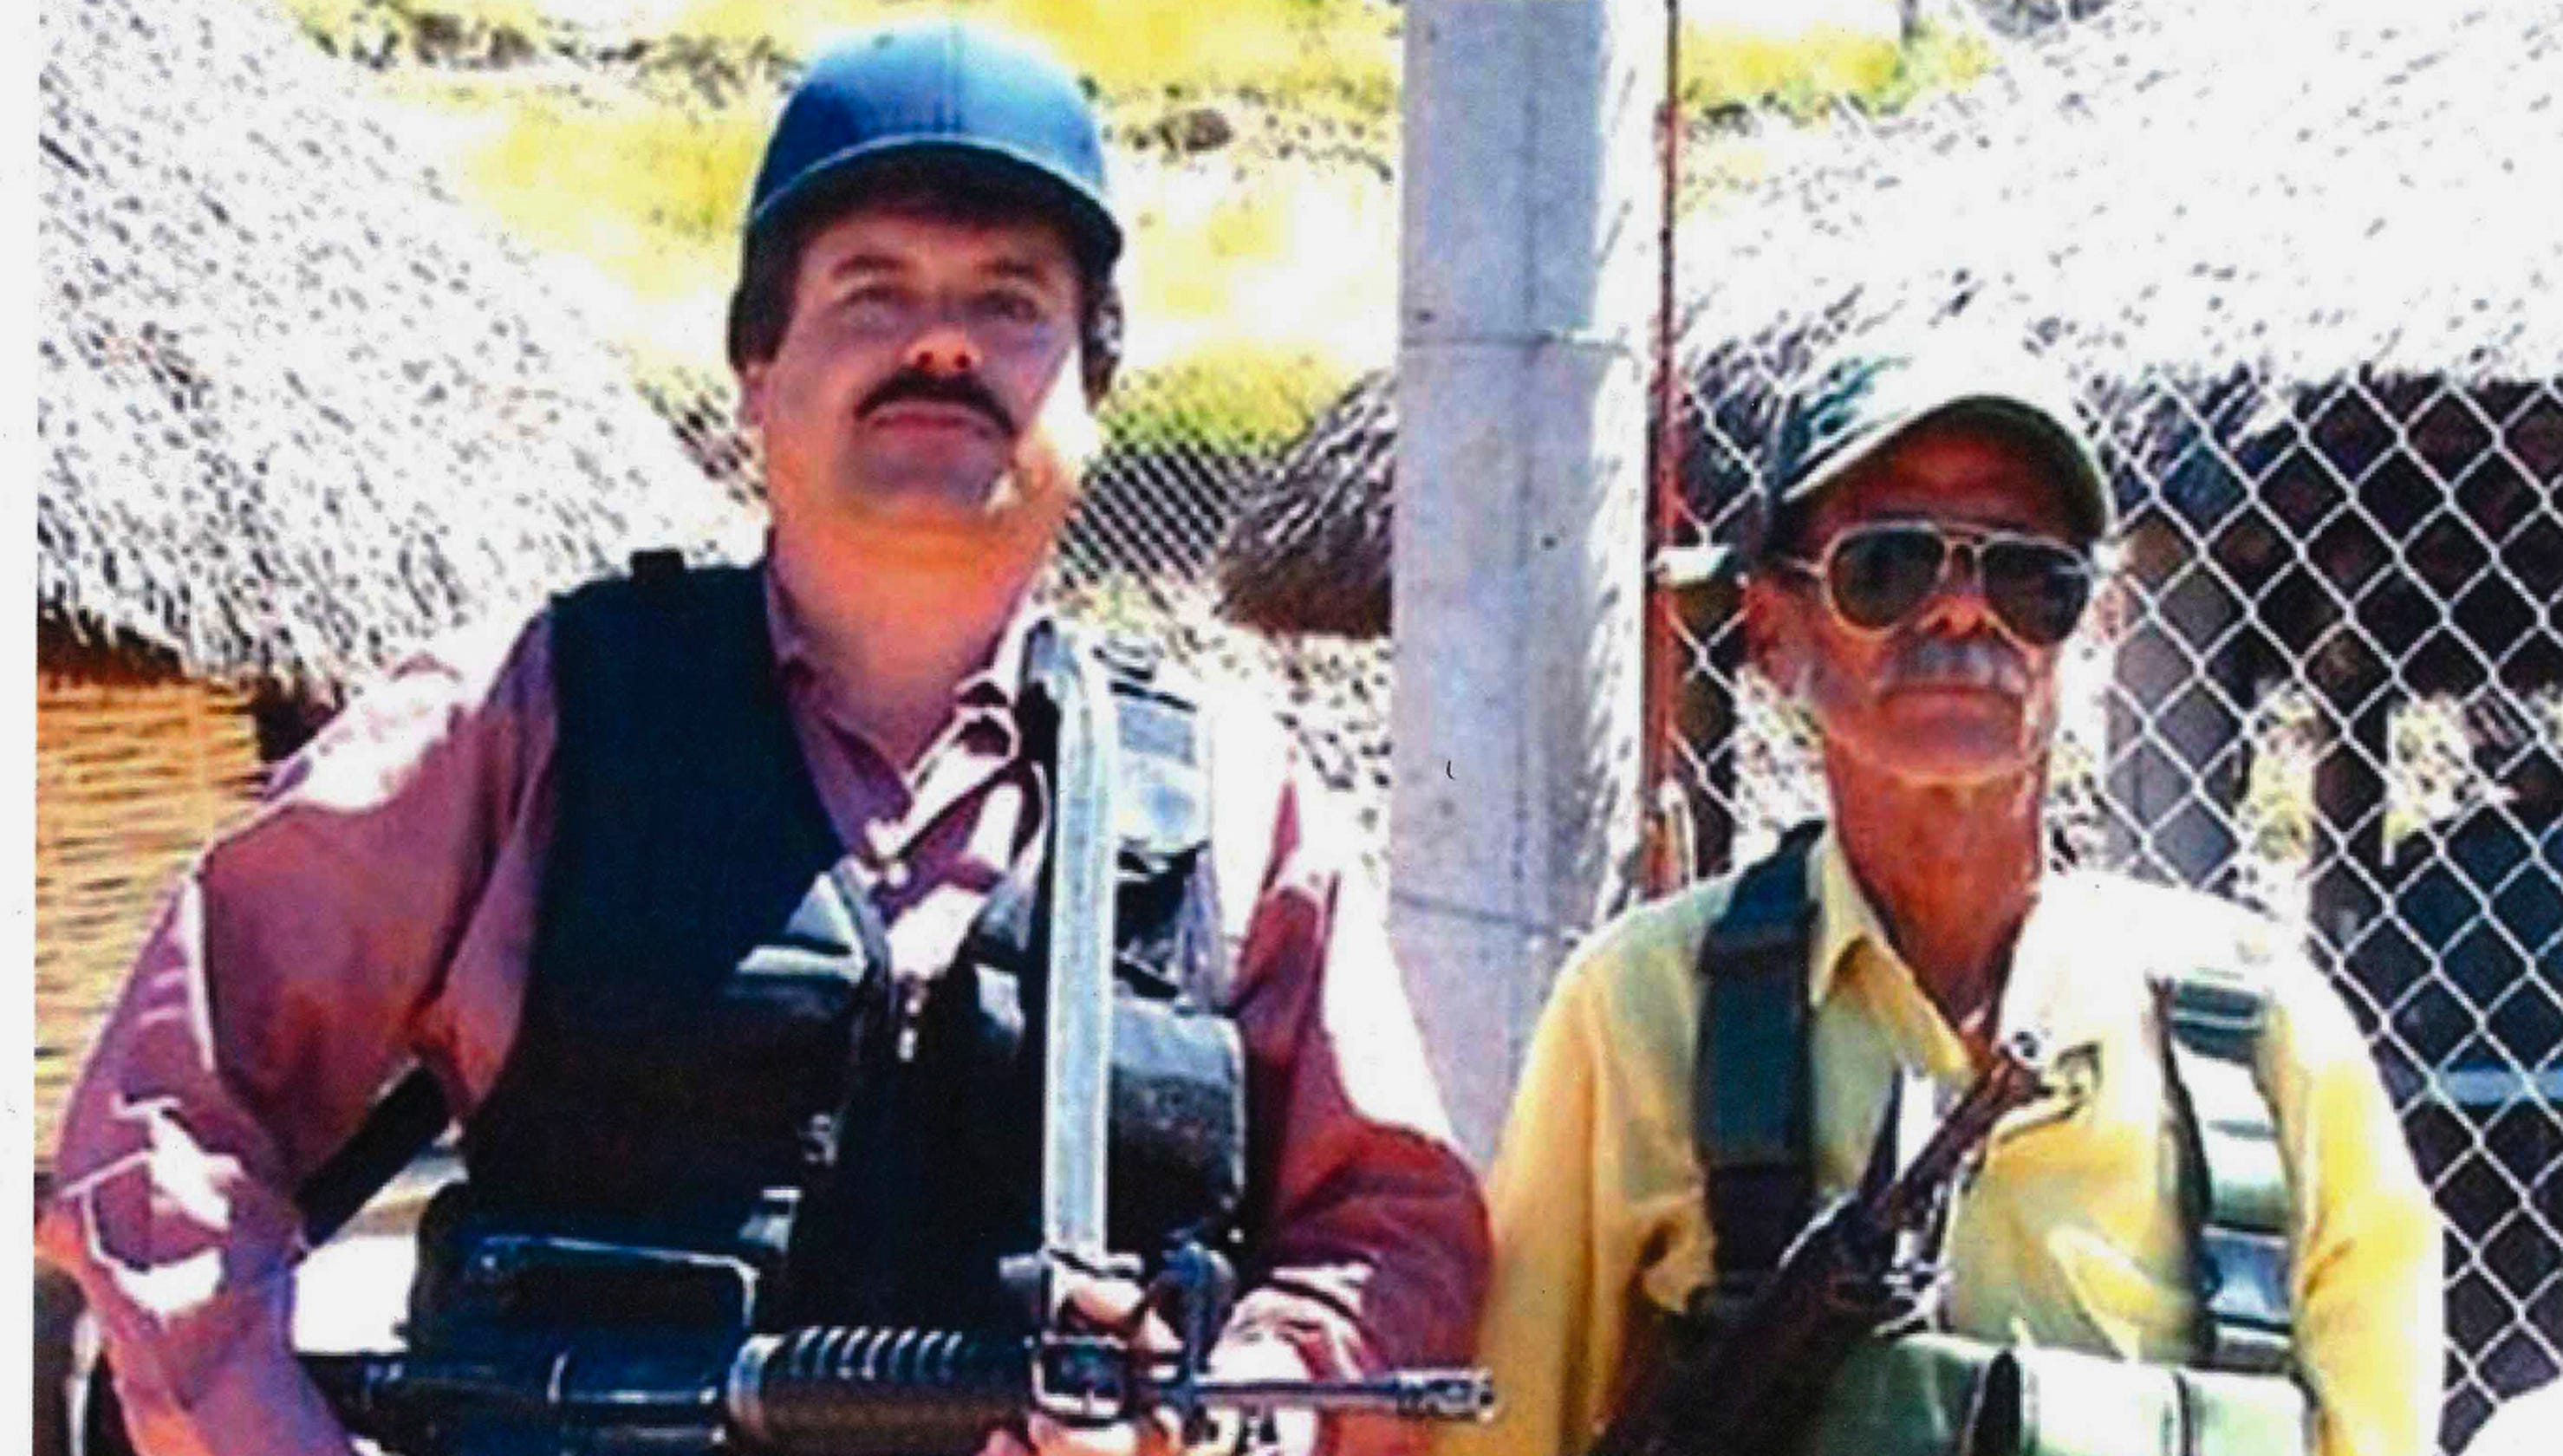 Drug lord Joaquín El Chapo Guzmán guilty, faces life in prison